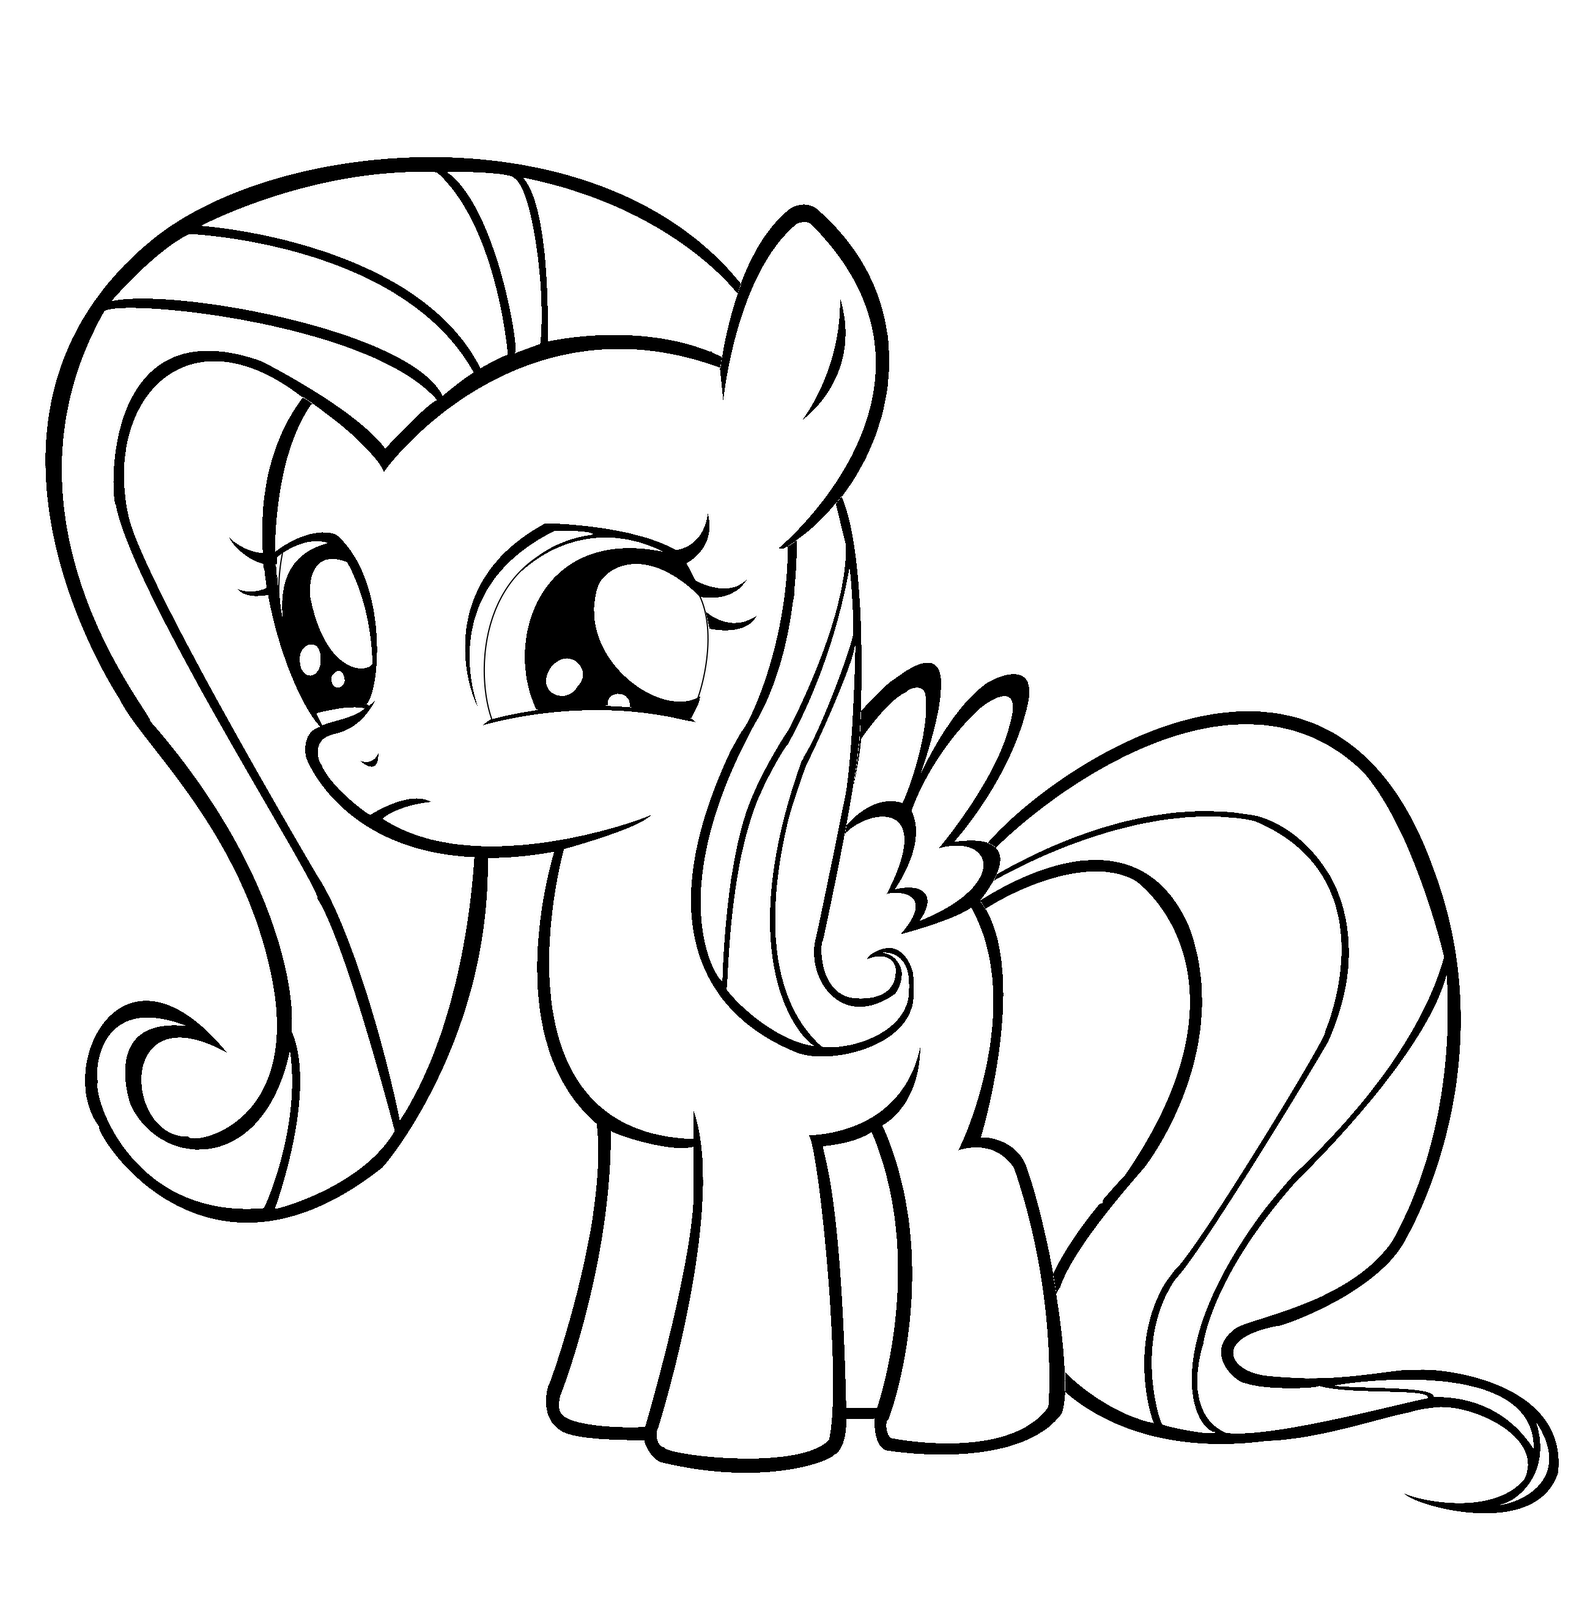 baby my little pony coloring pages baby scootaloo my little pony coloring pages printable little pages baby my coloring pony